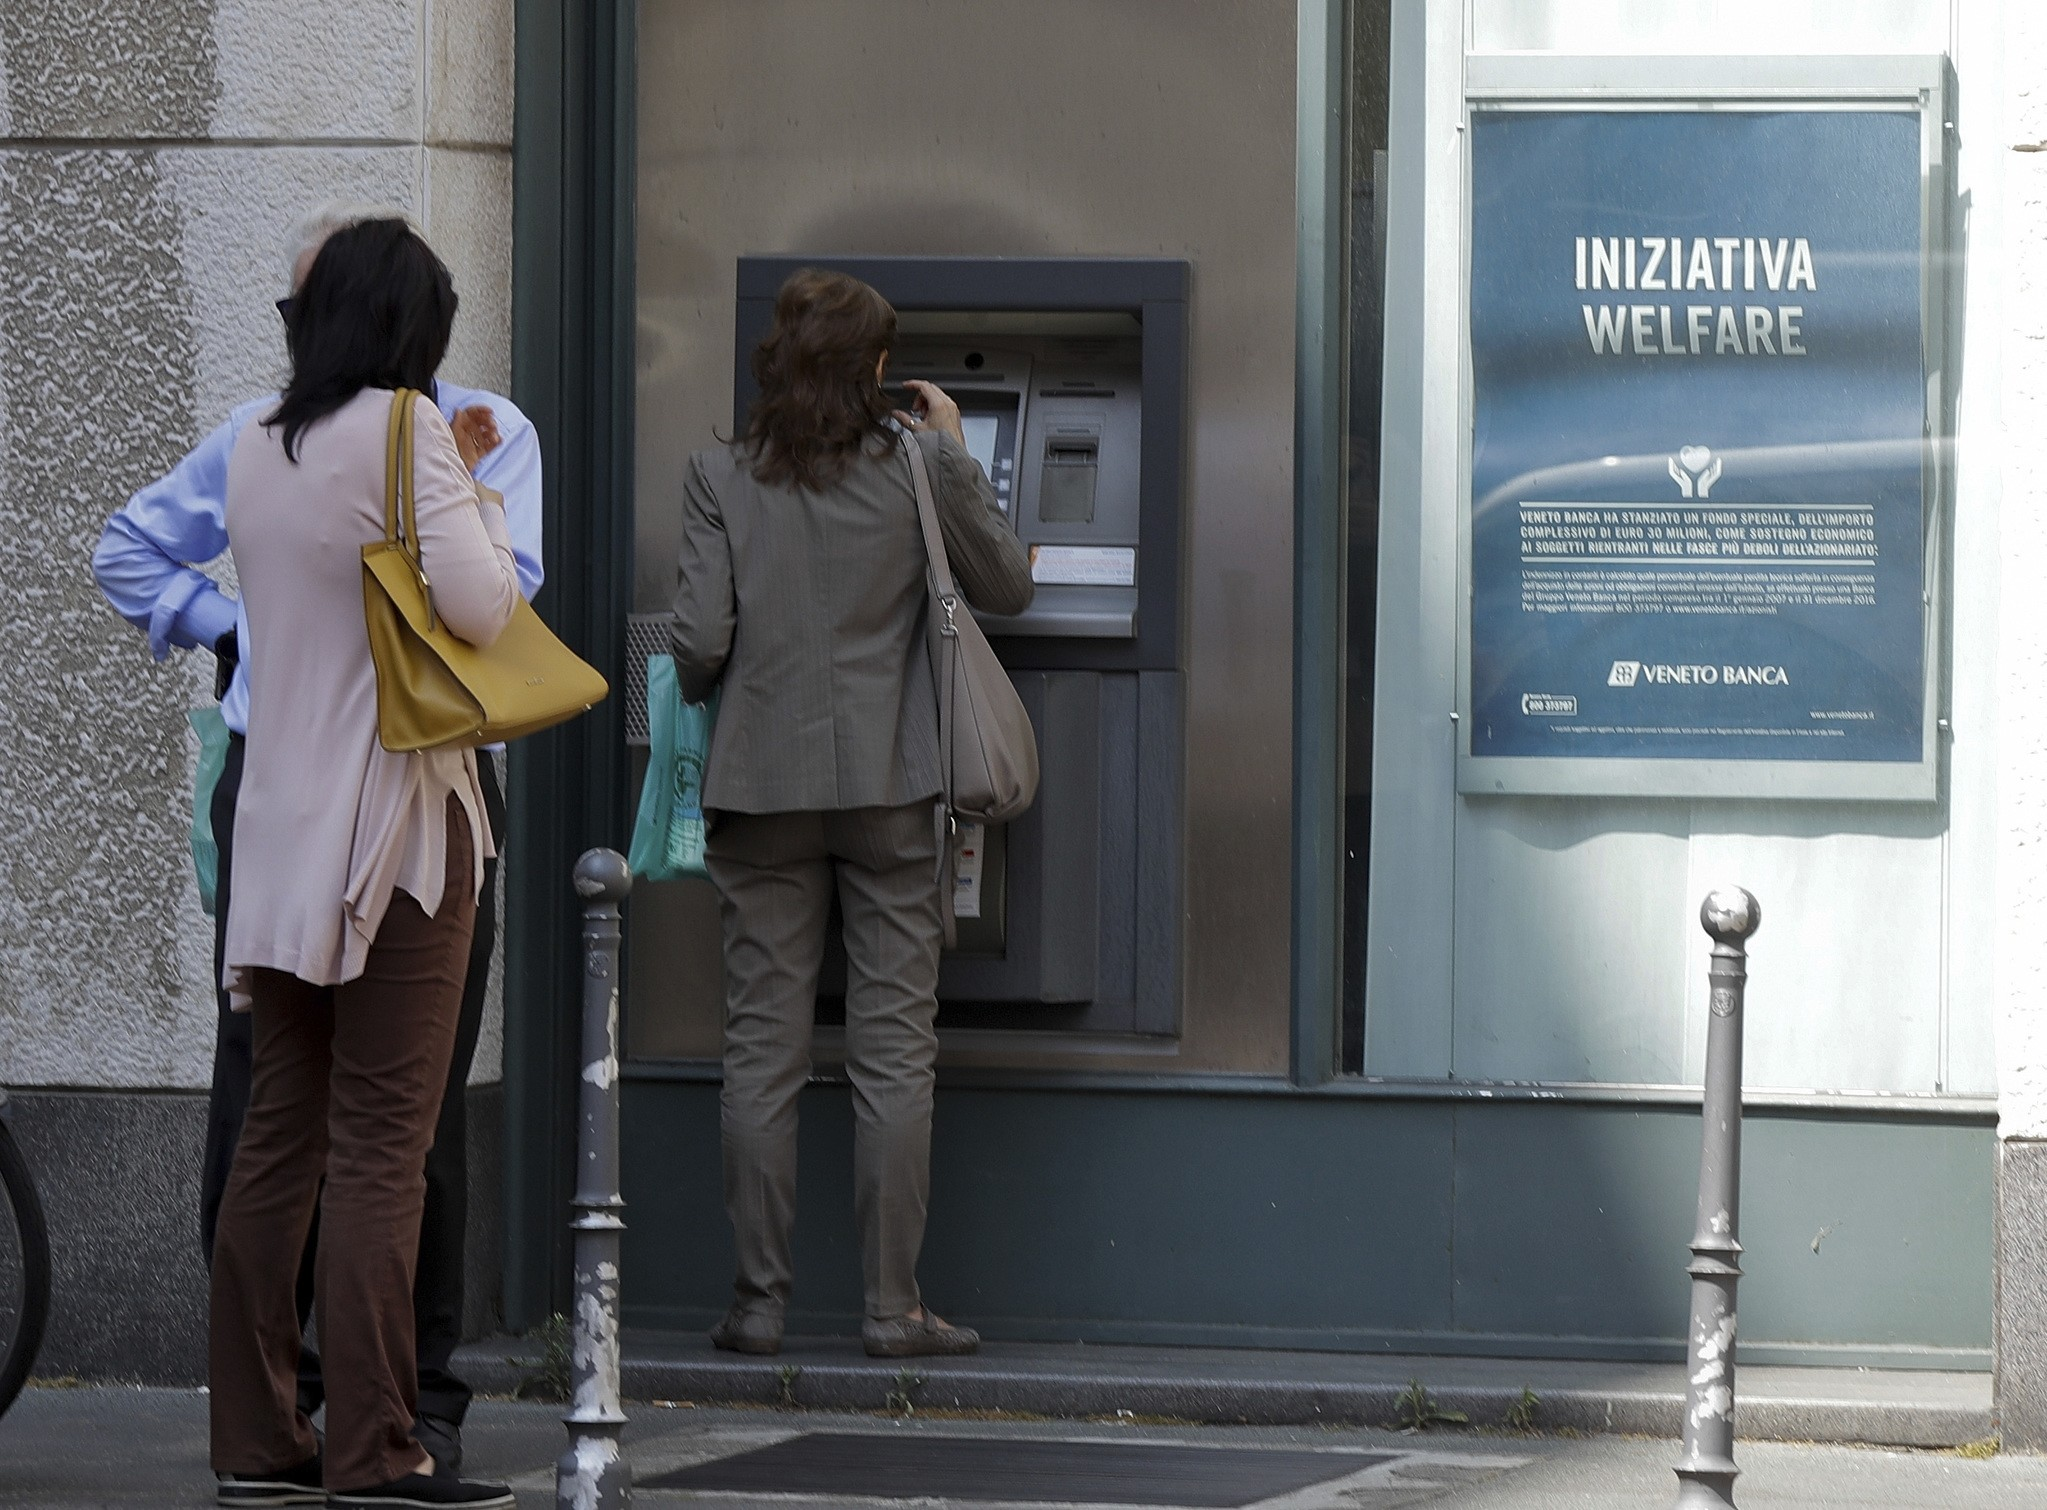 People line up at a cash machine of a Veneto Banca branch in Milan, Italy, Monday, June 26, 2017. (AP Photo)